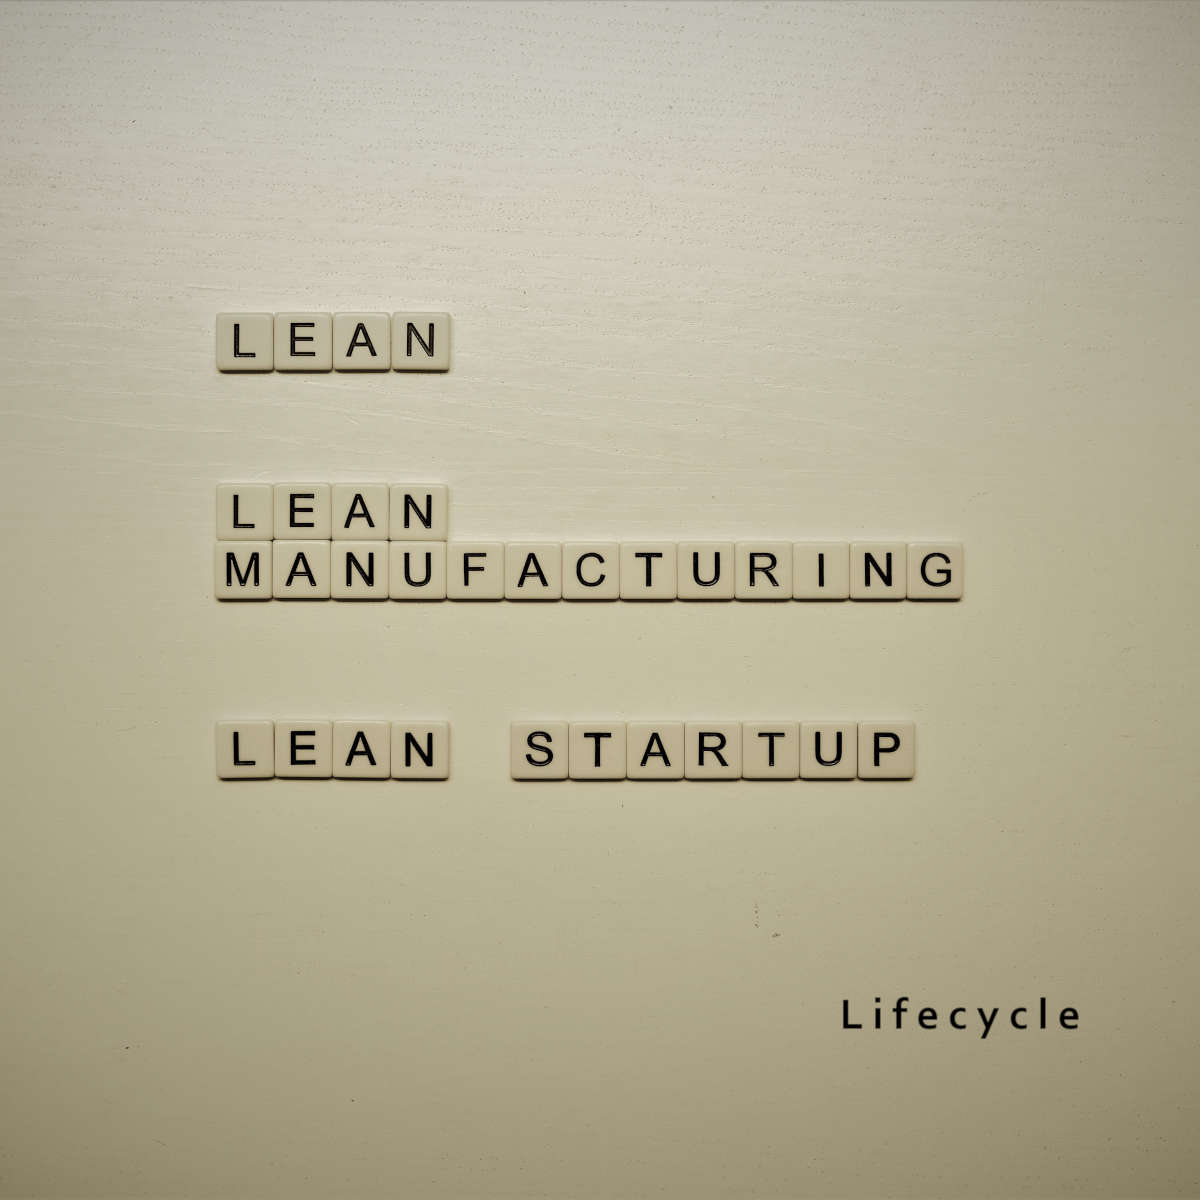 Lean, Lean Manufacturing, Lean Startup, Clarified | Lifecycle